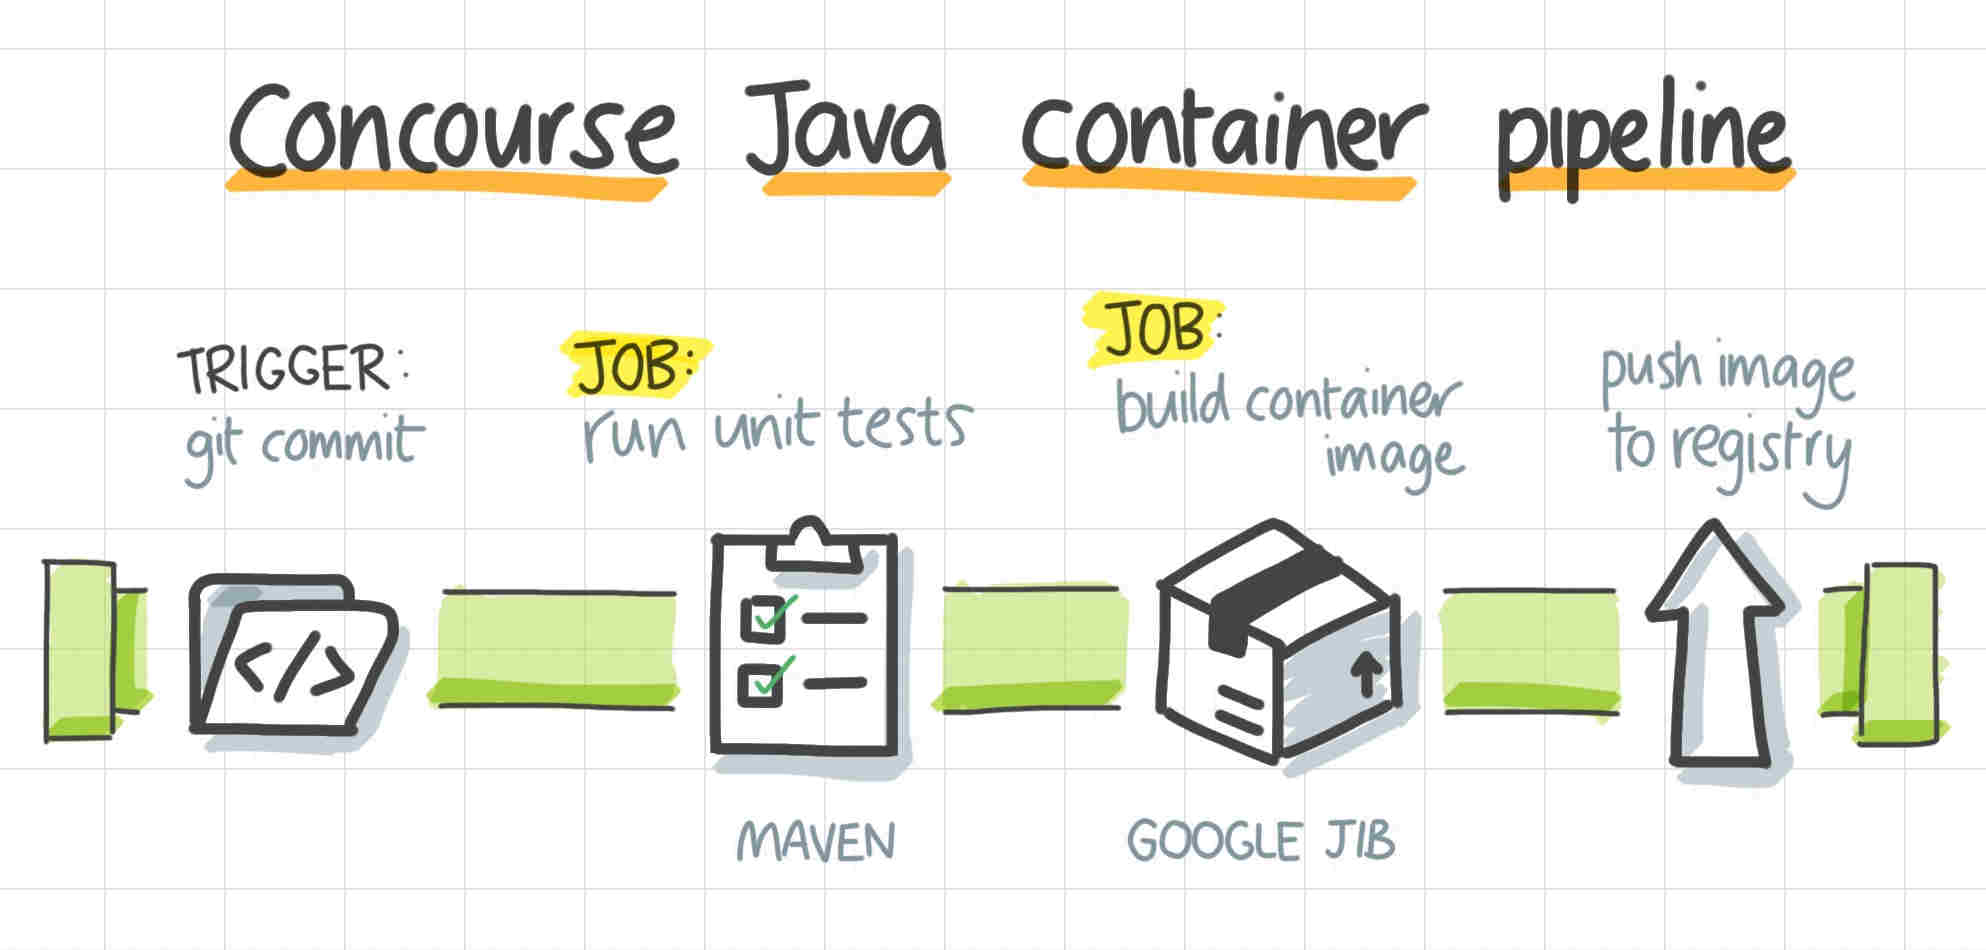 A Concourse Java container pipeline, consisting of a trigger, a testing job, a package job, and then pushing a container image